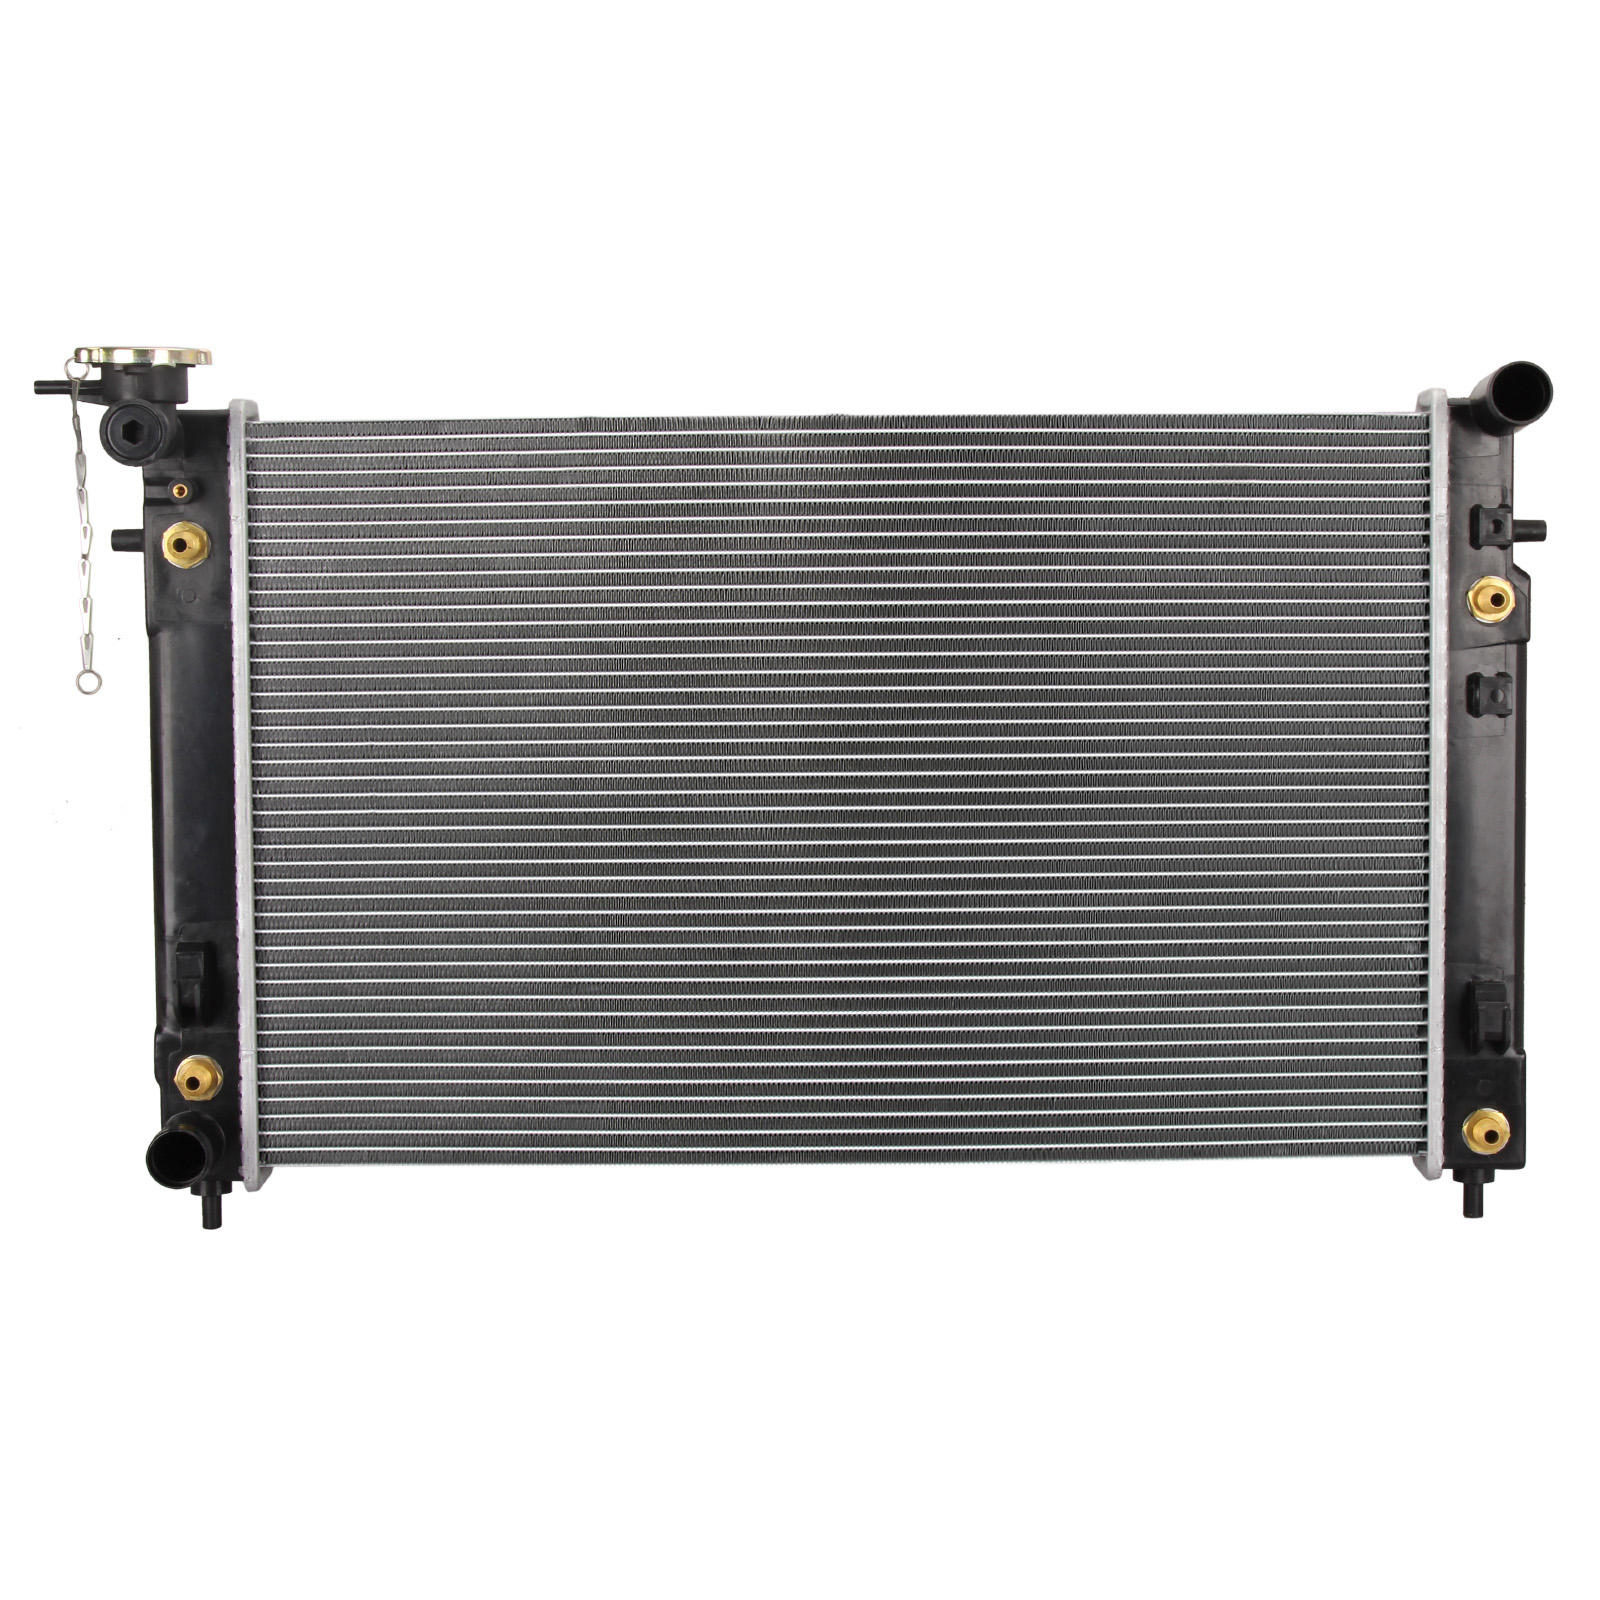 Premium Radiator for Holden Commodore VT VX V6 3.8L Petrol 1997-2002 Dual Oil